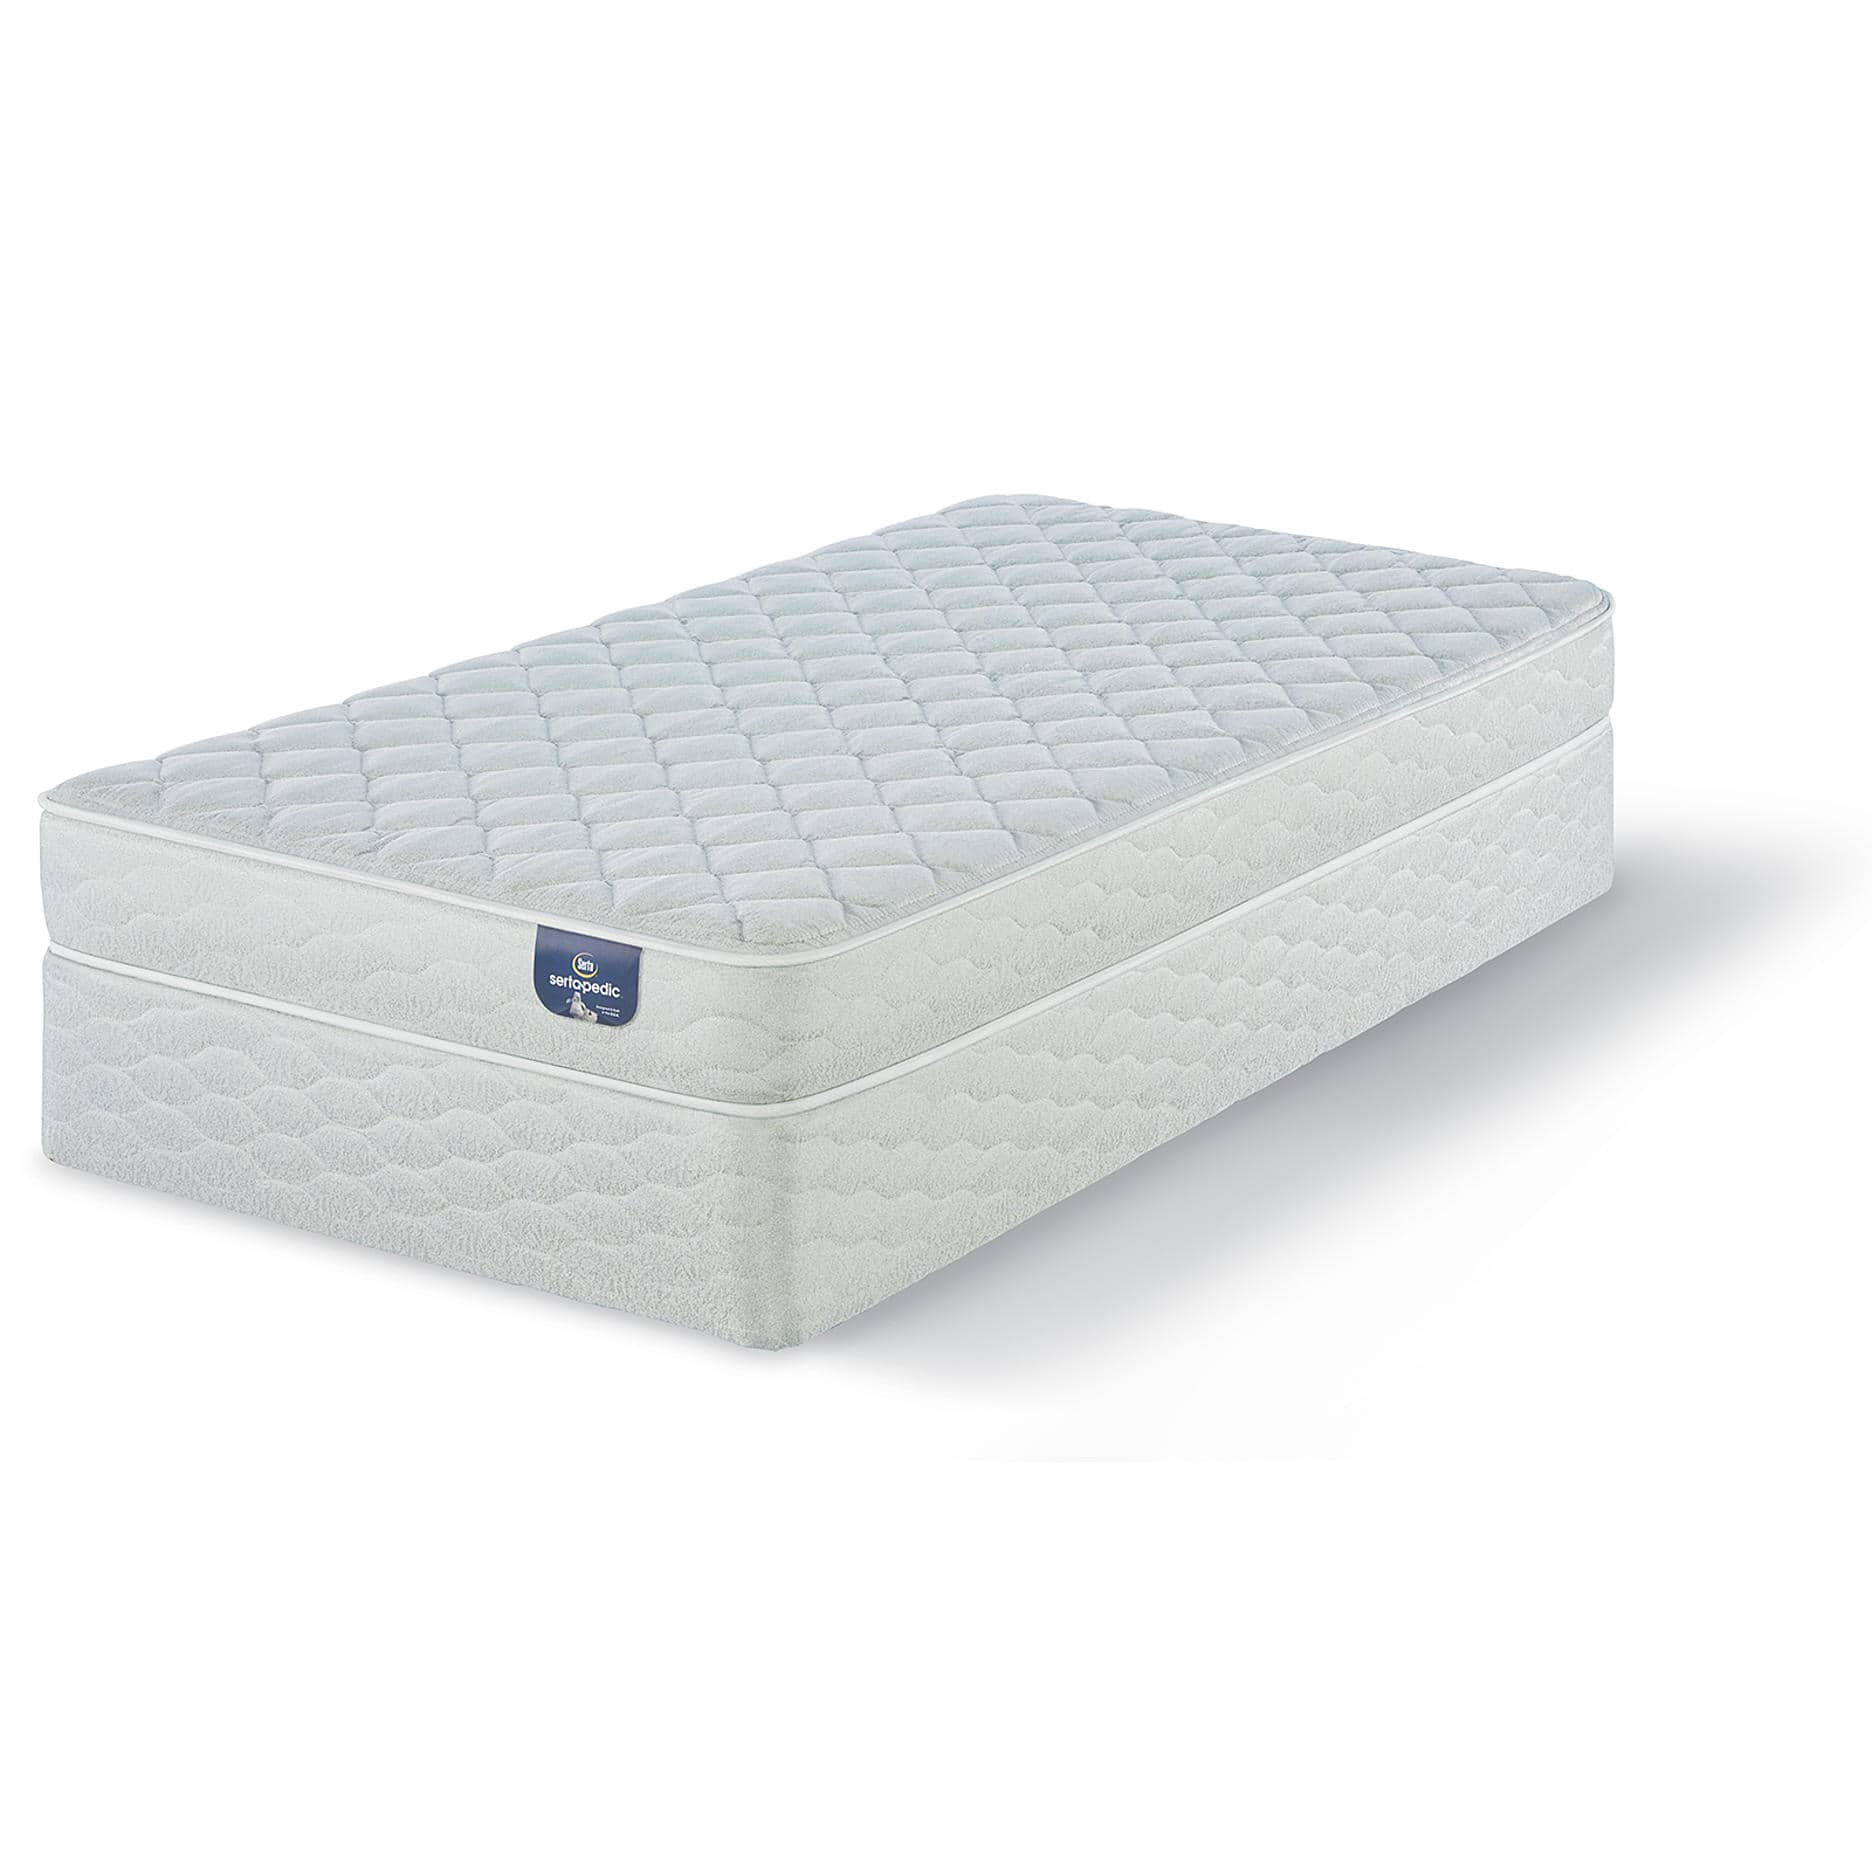 Serta Sertapedic Chiswick Firm Queen Mattress Bonus Box Spring Slickdeals